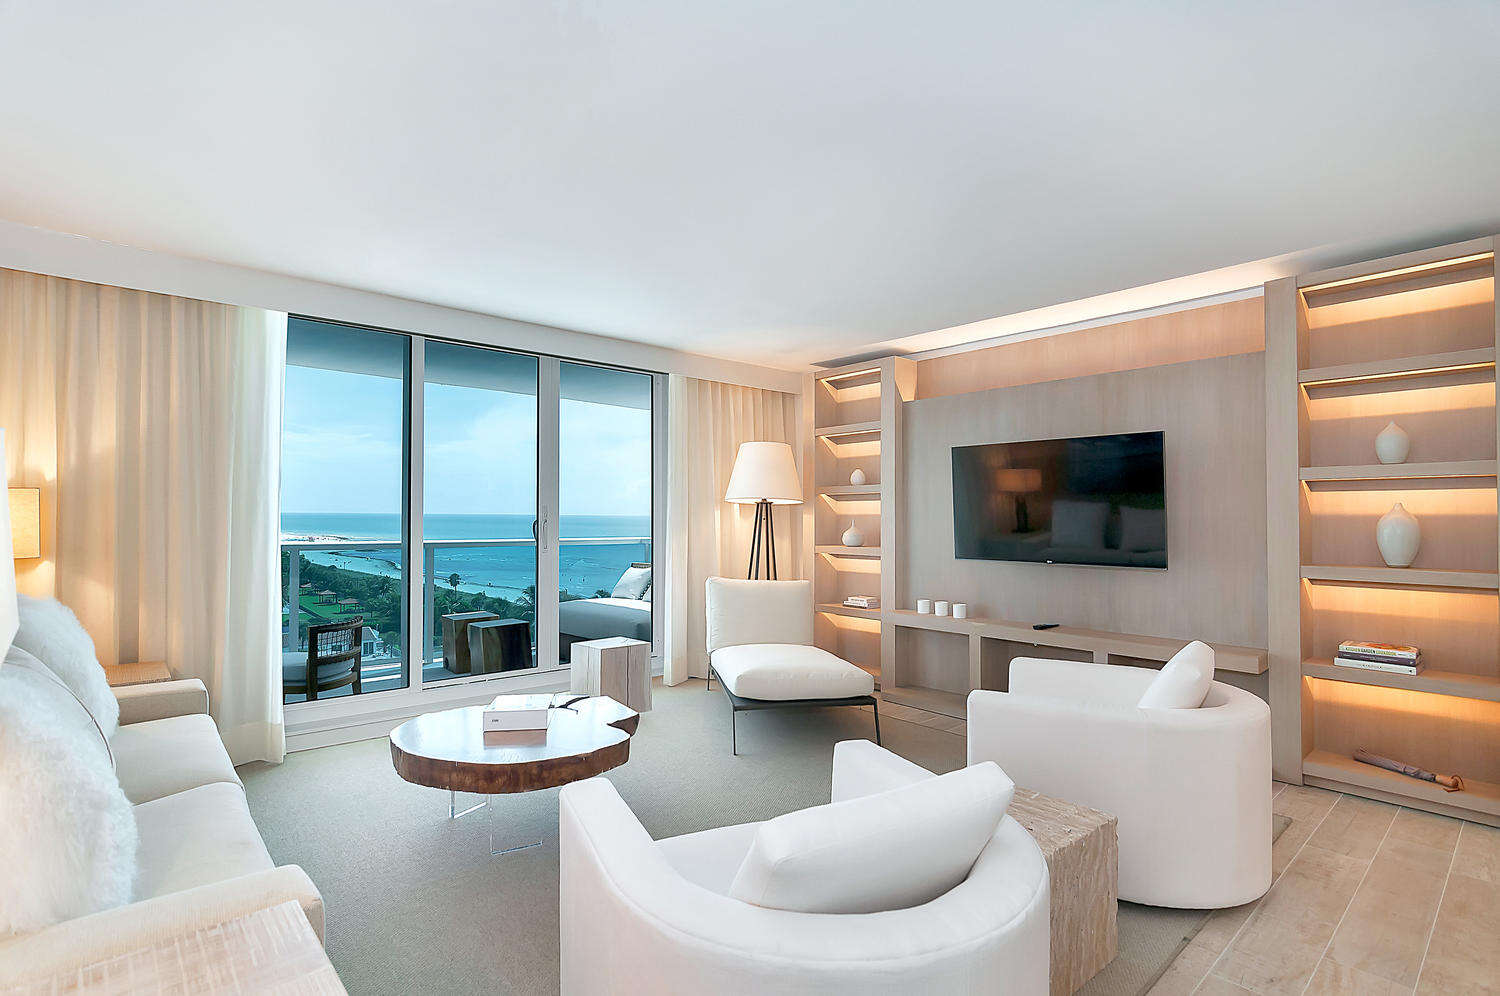 Luxury vacation rentals usa - Florida - Miami beach - Eco hotel southbeach - #919 | 3 BDM Oceanfront - Image 1/27